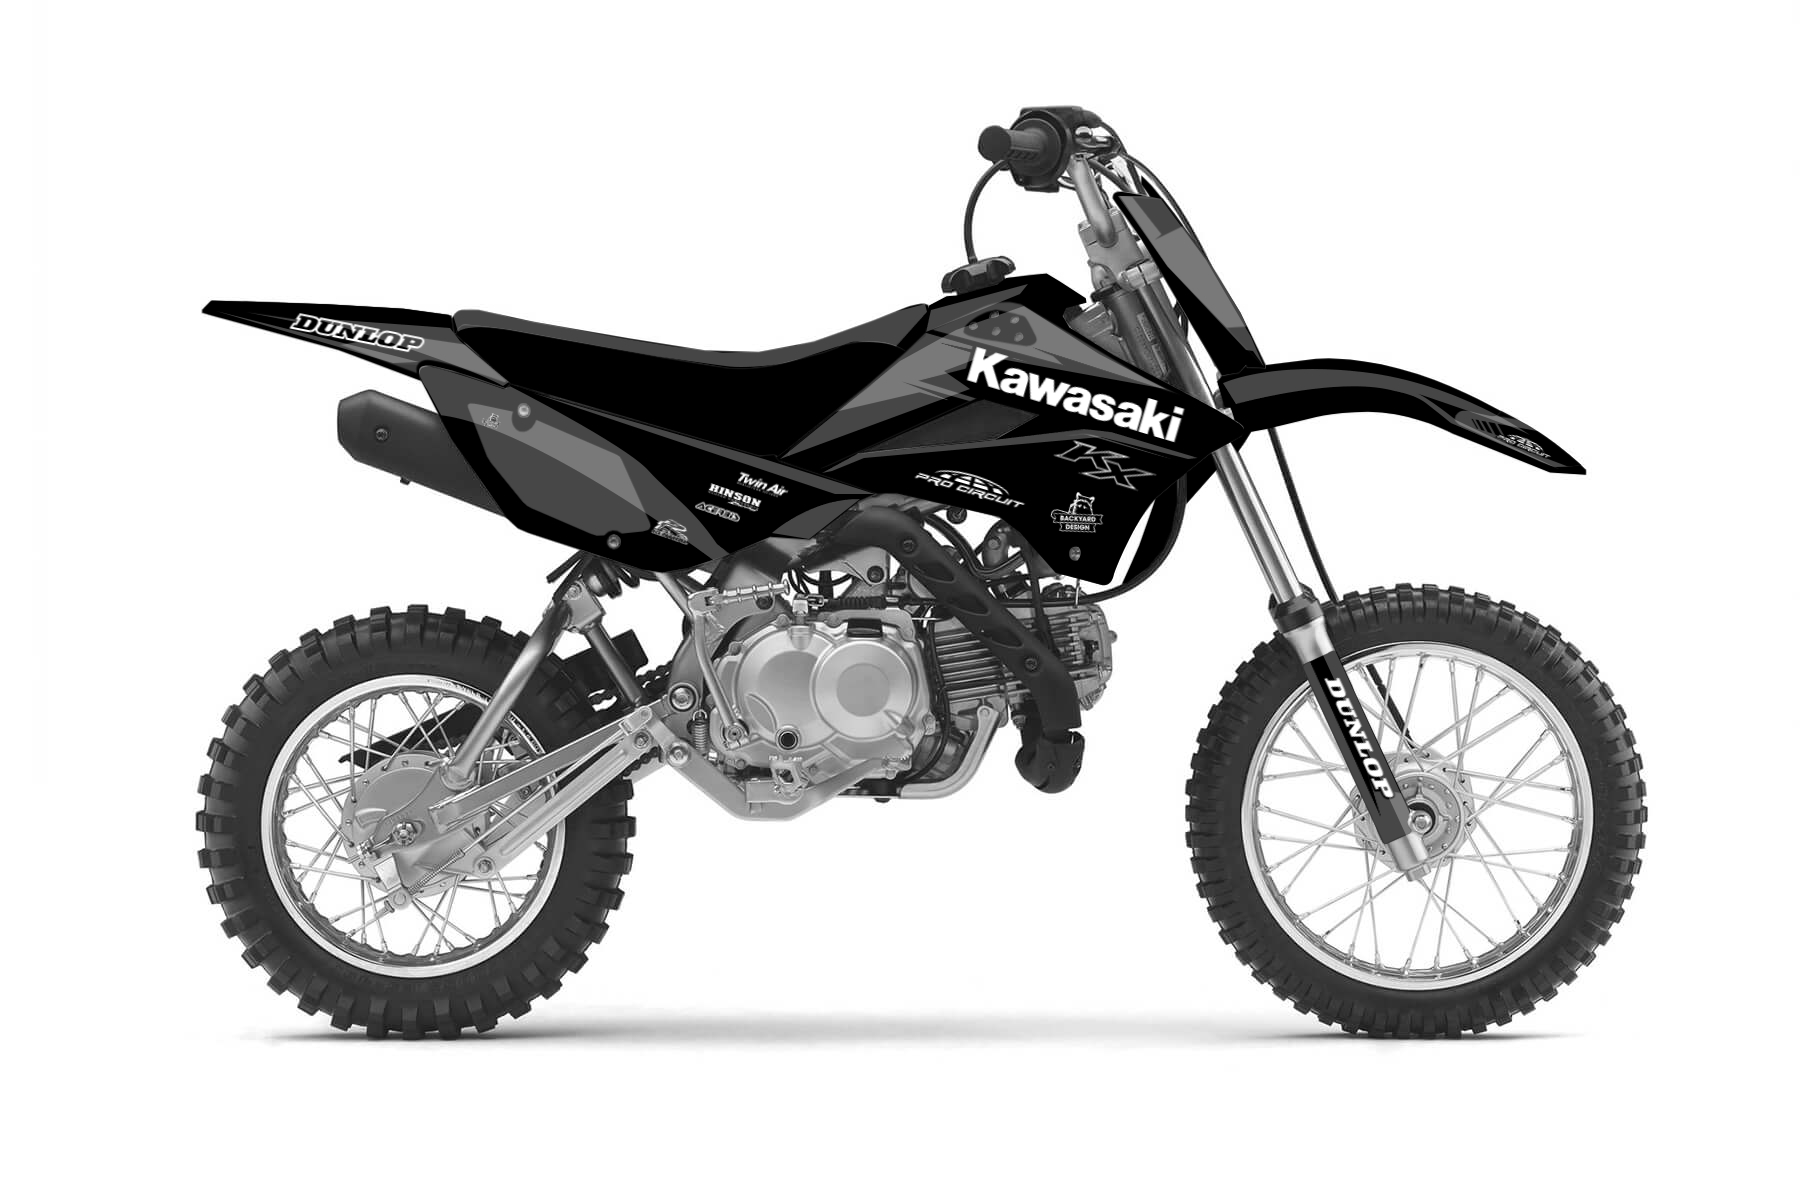 Kawasaki KLX110 MX Graphic Kits  The Kawasaki KLX 110 is the perfect bike for your off road adventure! A transmission with 4 gears and a lightweight frame combine with good handling.